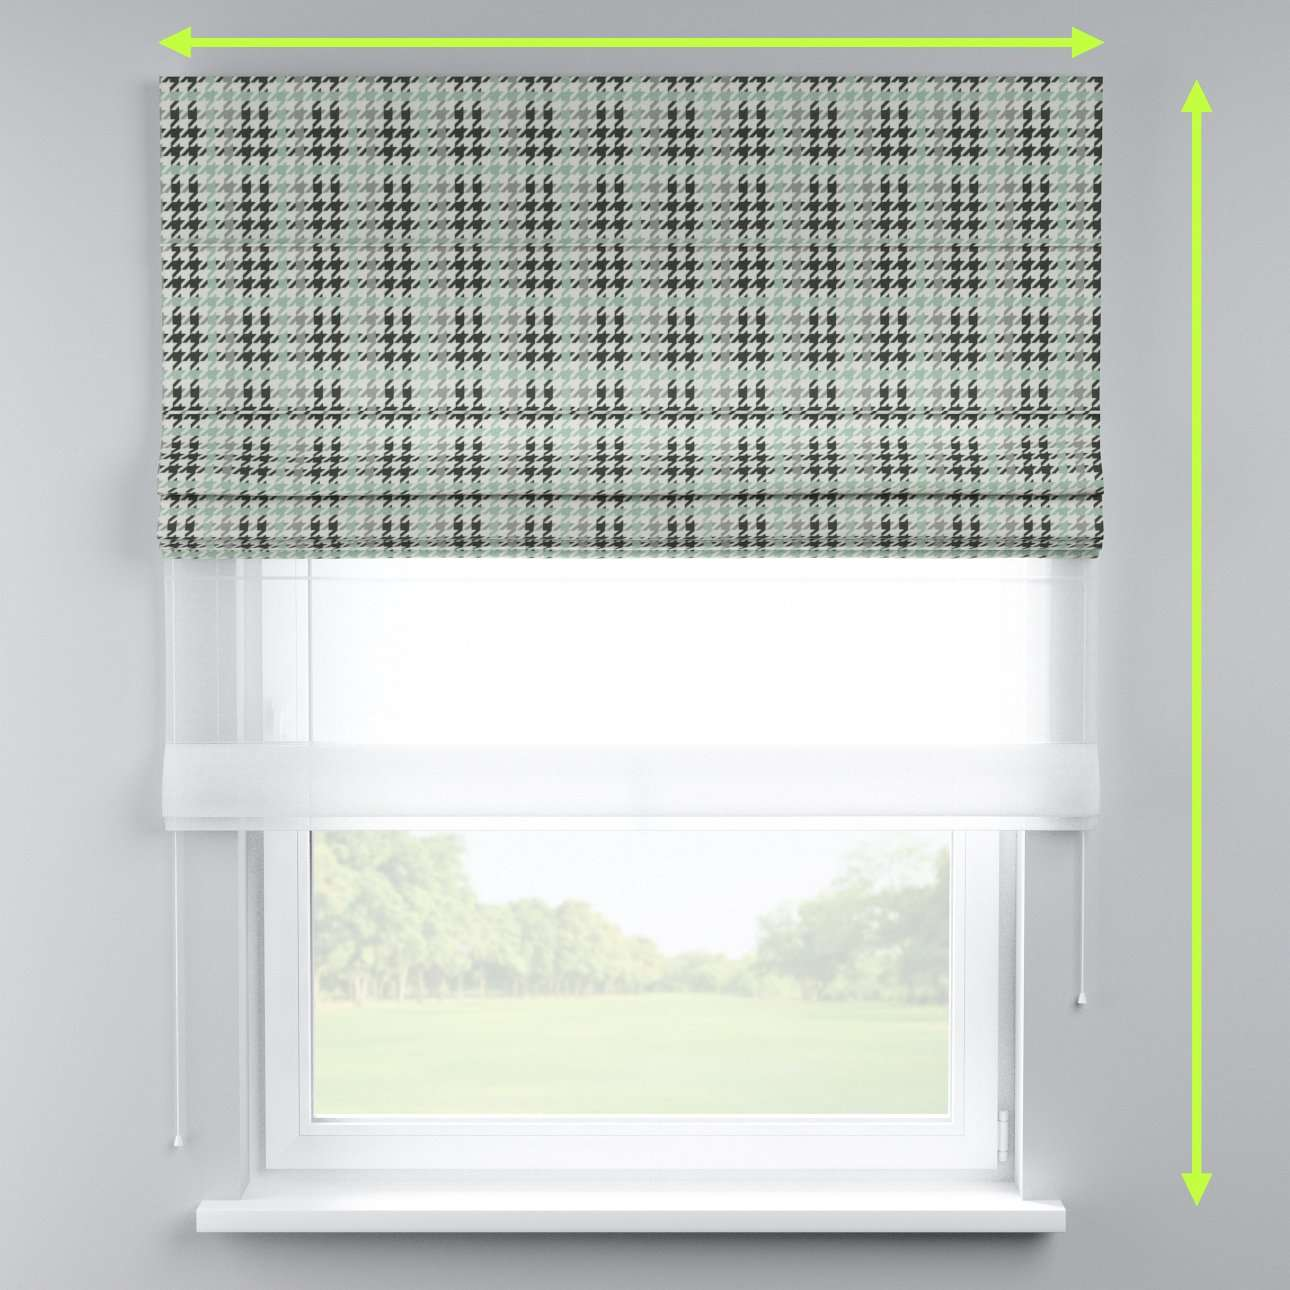 Voile and fabric roman blind (DUO II) in collection Brooklyn, fabric: 137-77